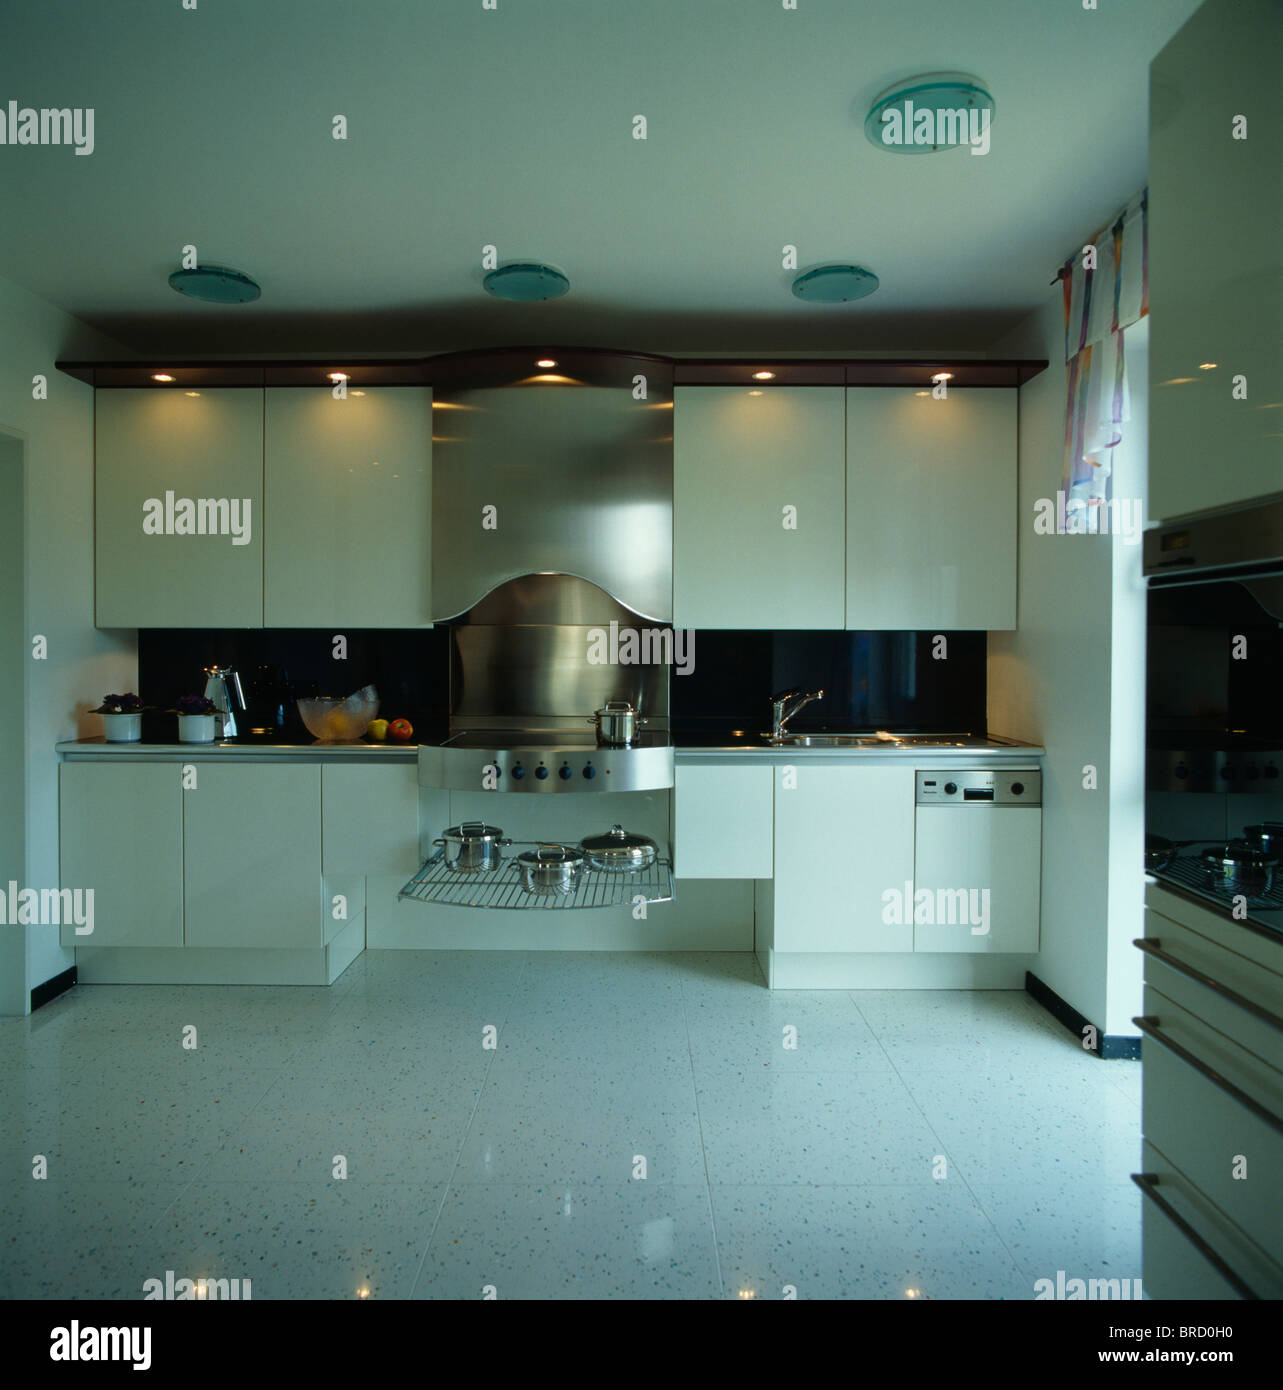 Recessed lighting above cupboards in modern white kitchen with pale ...